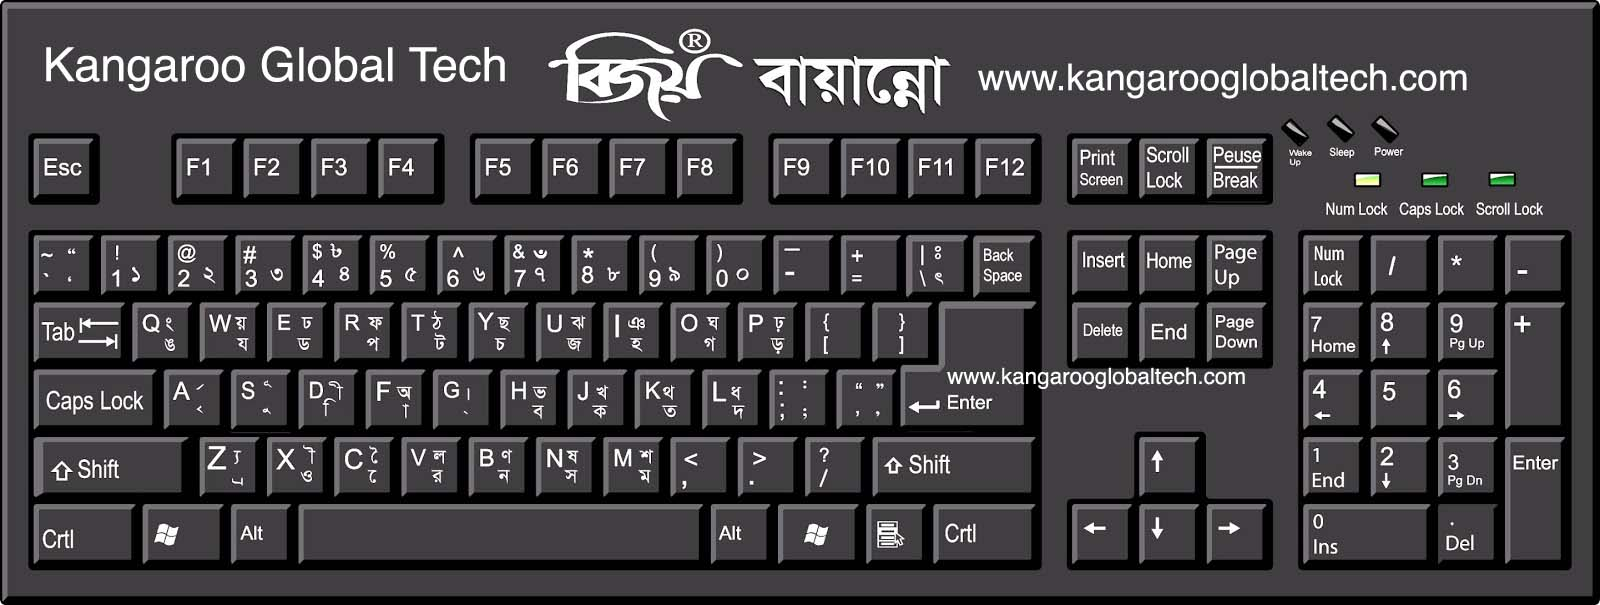 bijoy bangla keyboard free download for windows 7